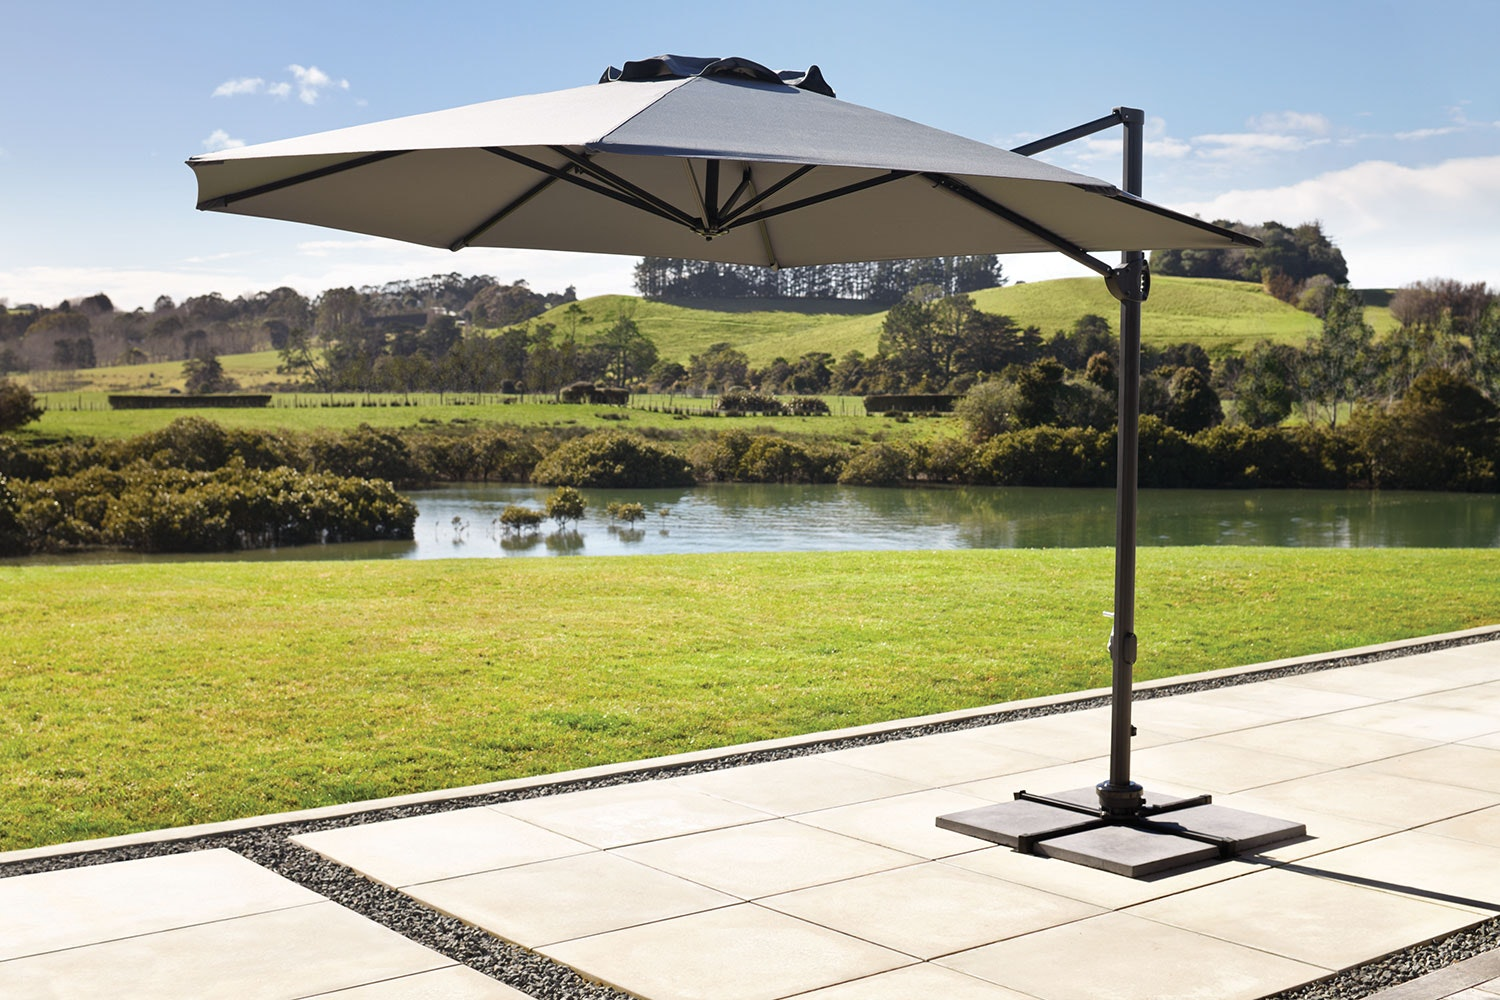 Jupiter Round 3.3m Cantilever Umbrella by Peros